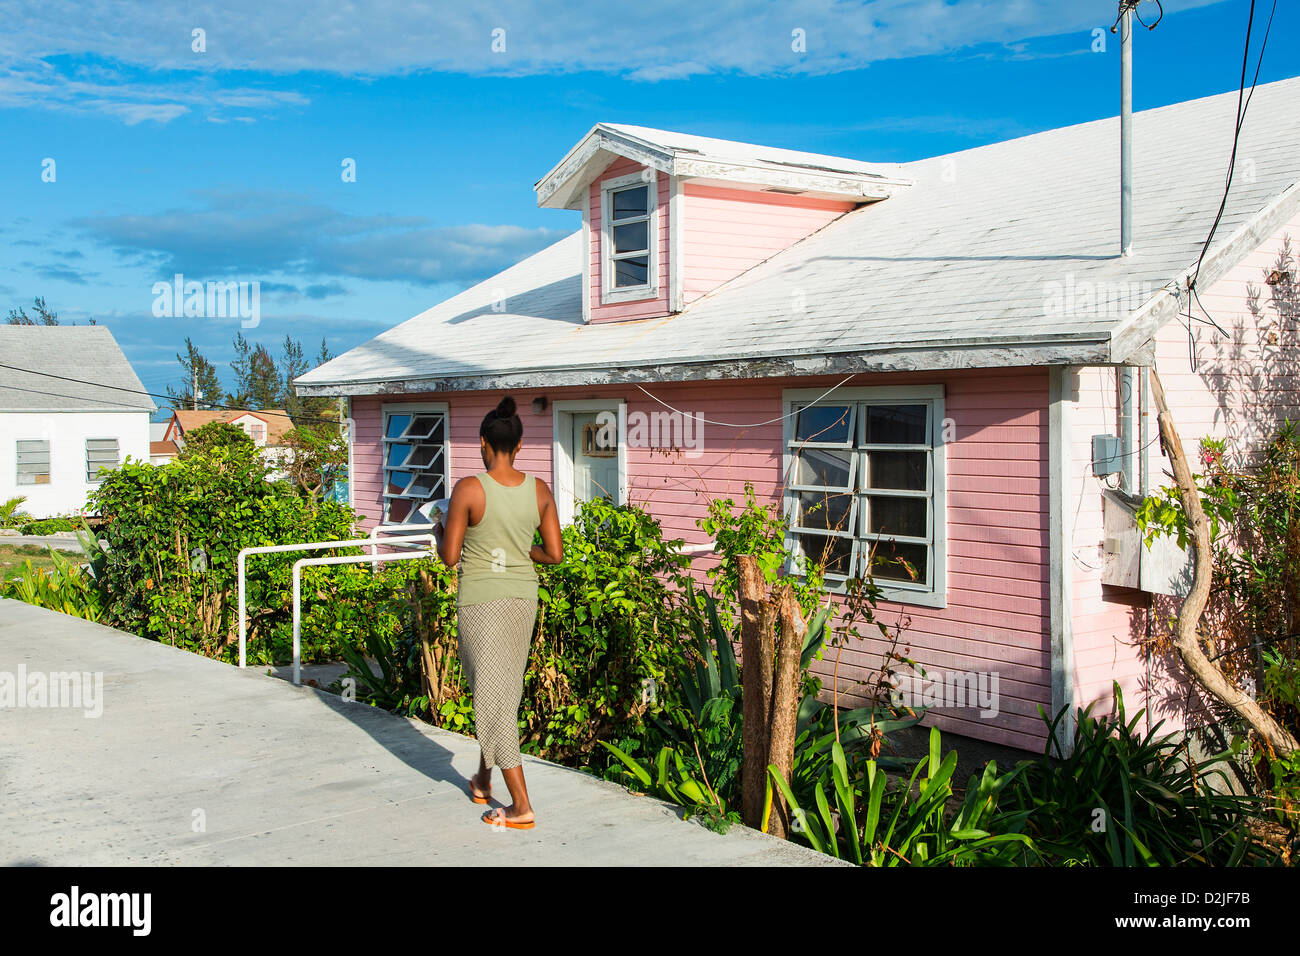 Bahamas, Eleuthera Island, Current Village - Stock Image